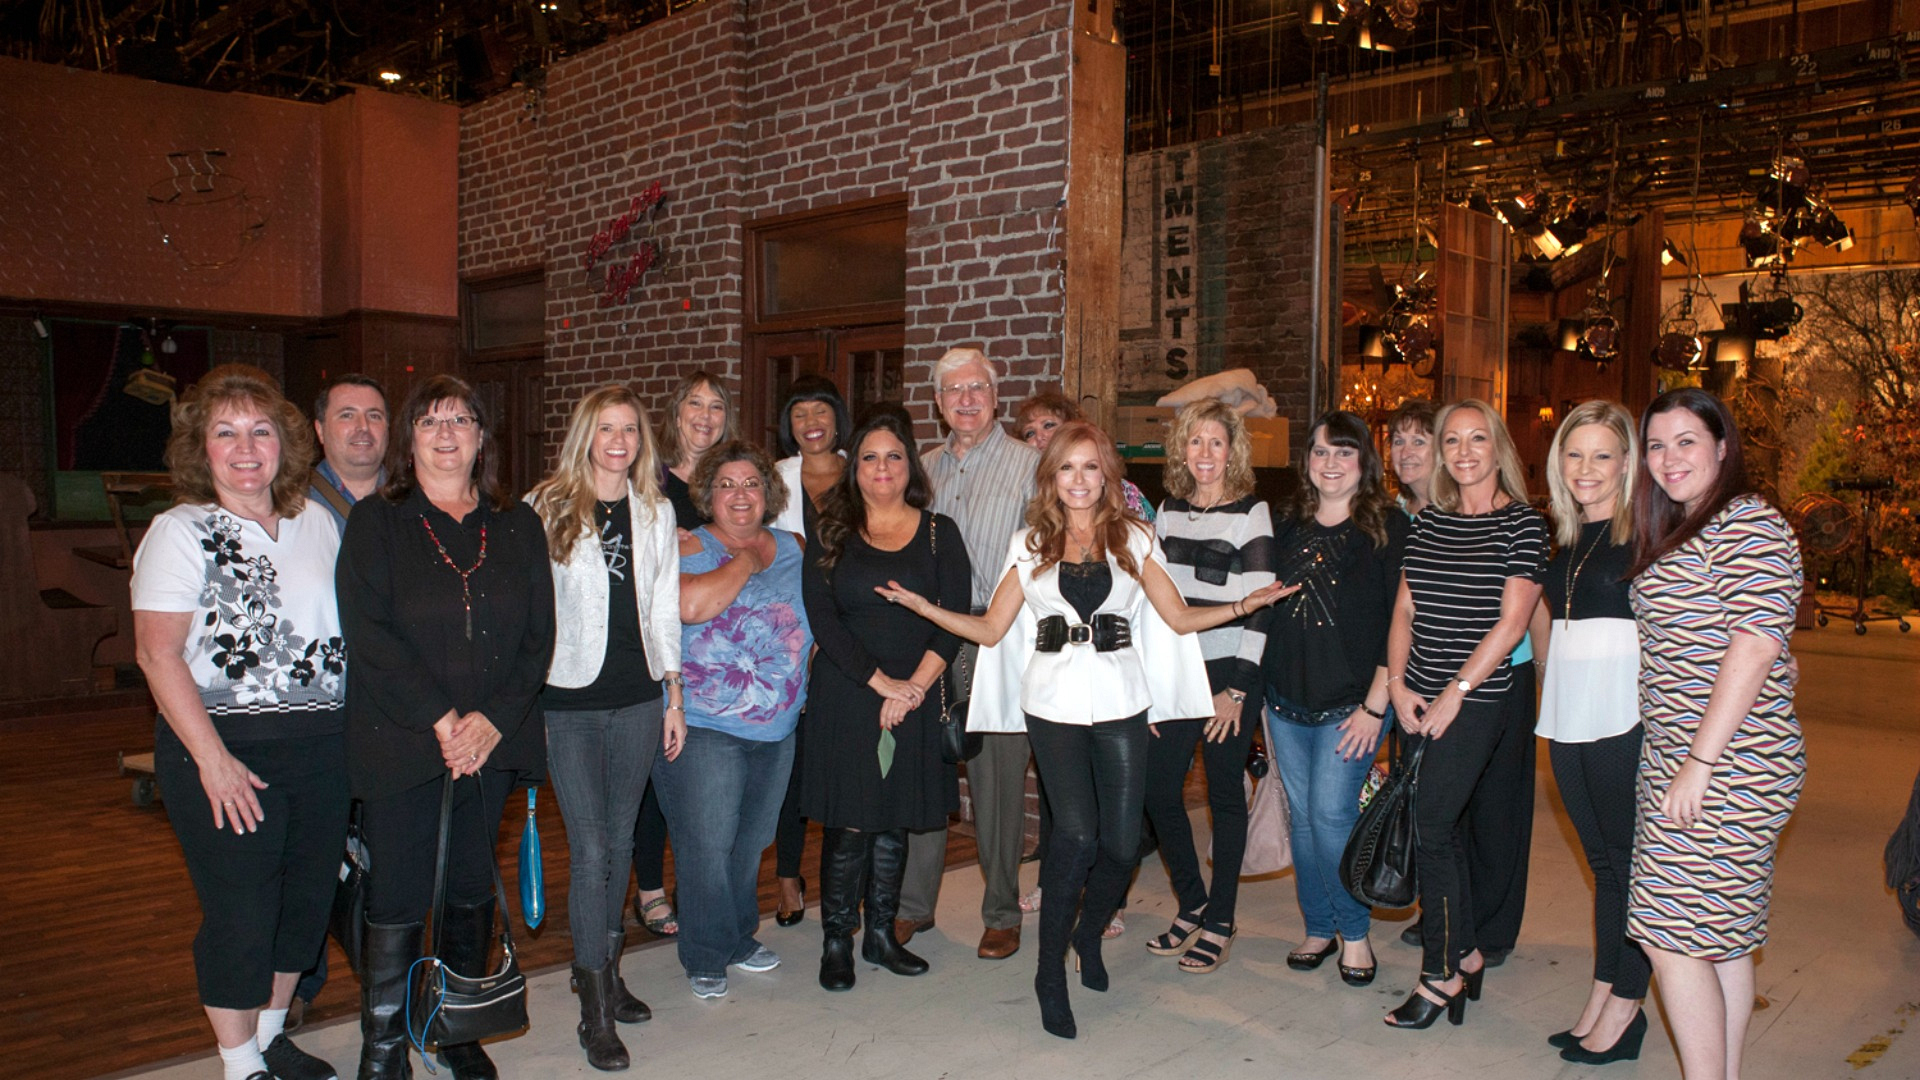 Fans hang with Y&R's Tracey Bregman at the Y&R set.